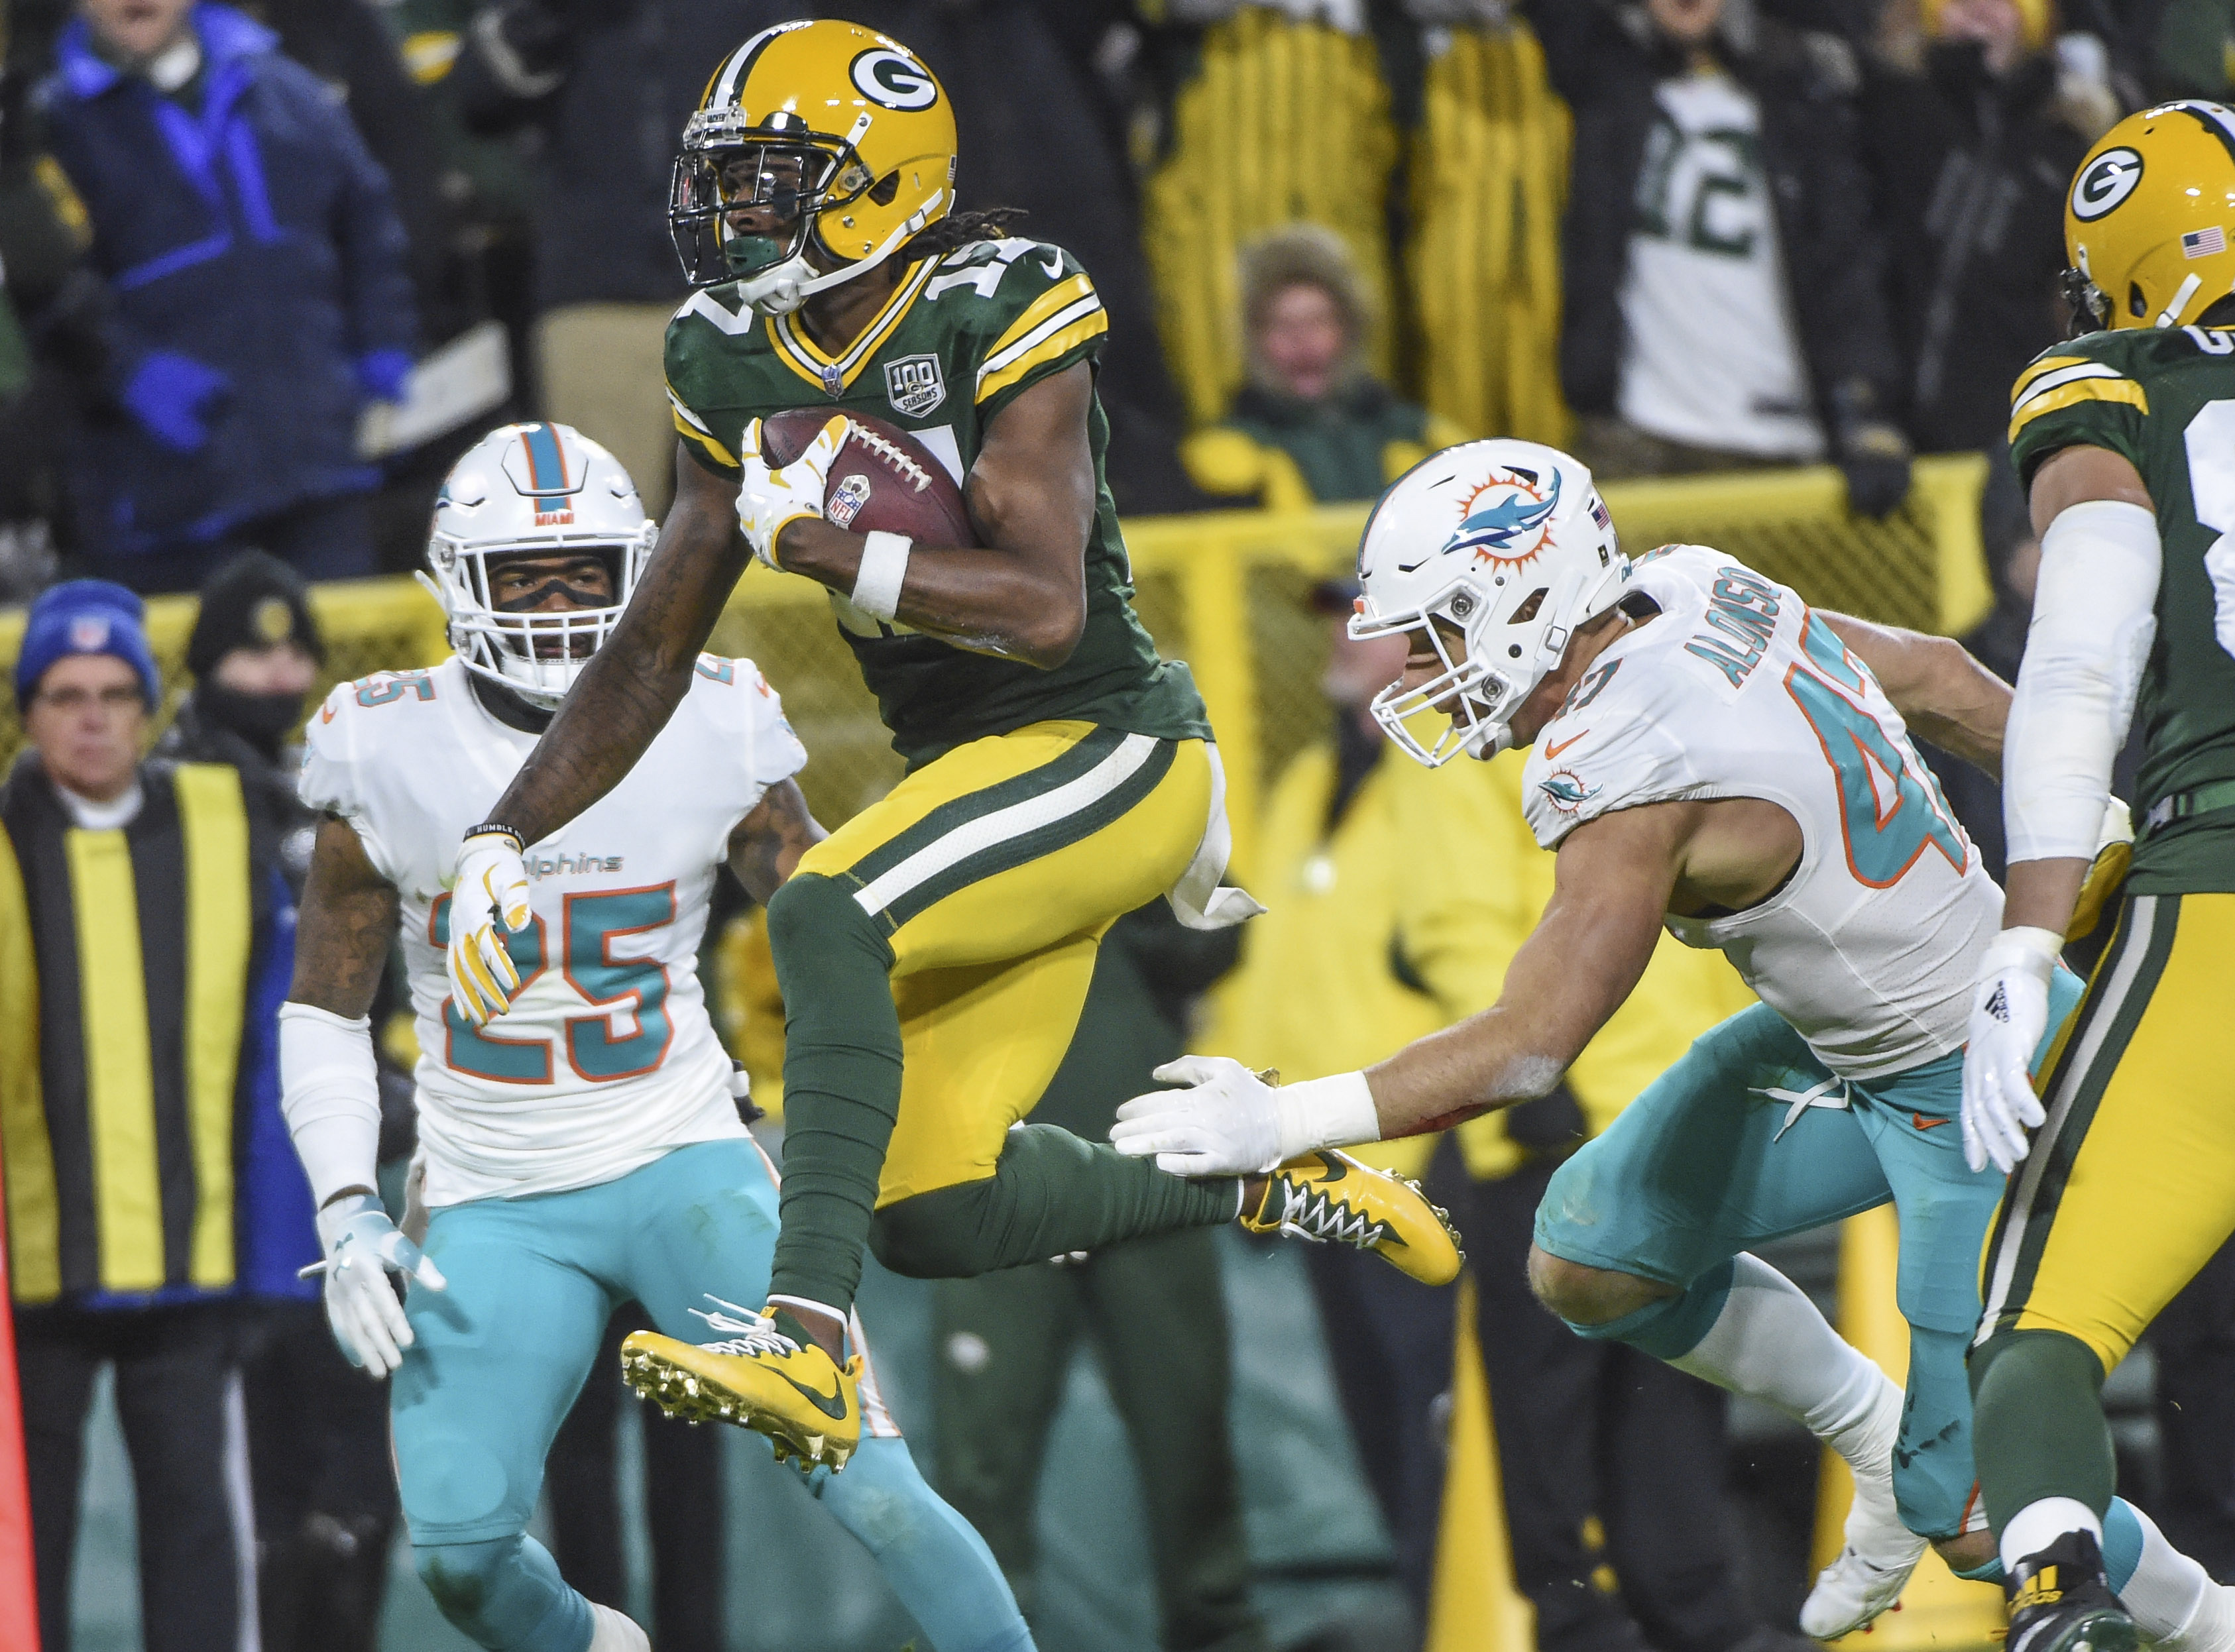 NFL: Miami Dolphins at Green Bay Packers